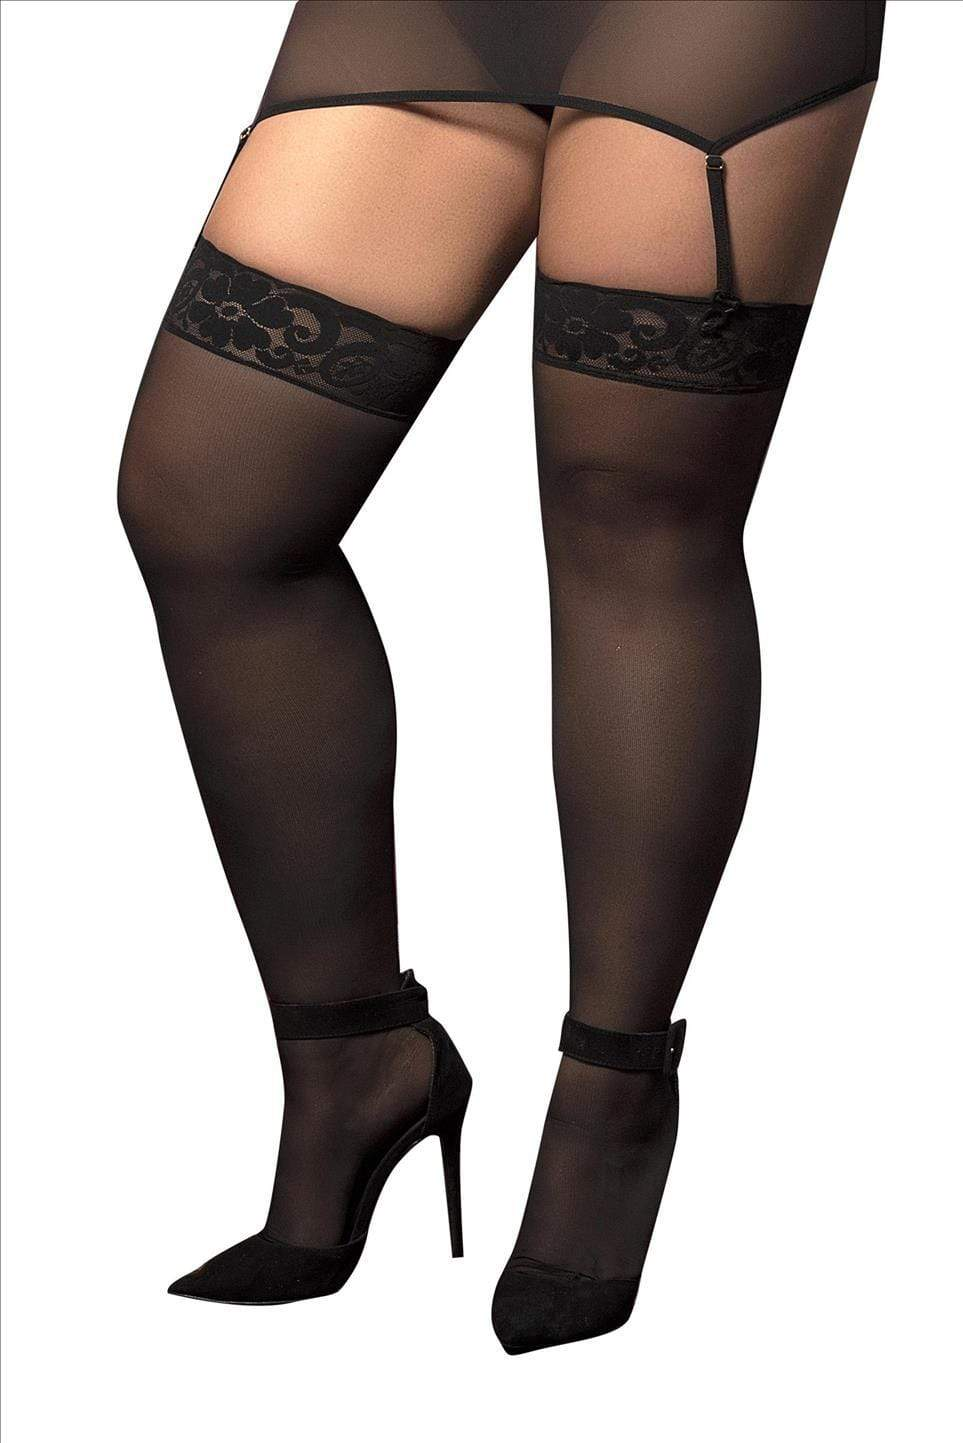 mapale Black / One Size Black Mesh Thigh Highs One Size Plus (Red also available) SHC-1094X-OS-BLK-MA Black Mesh Thigh Highs One Size Plus (Red also available)  | MAPALE 1094X Apparel & Accessories > Clothing > Pants